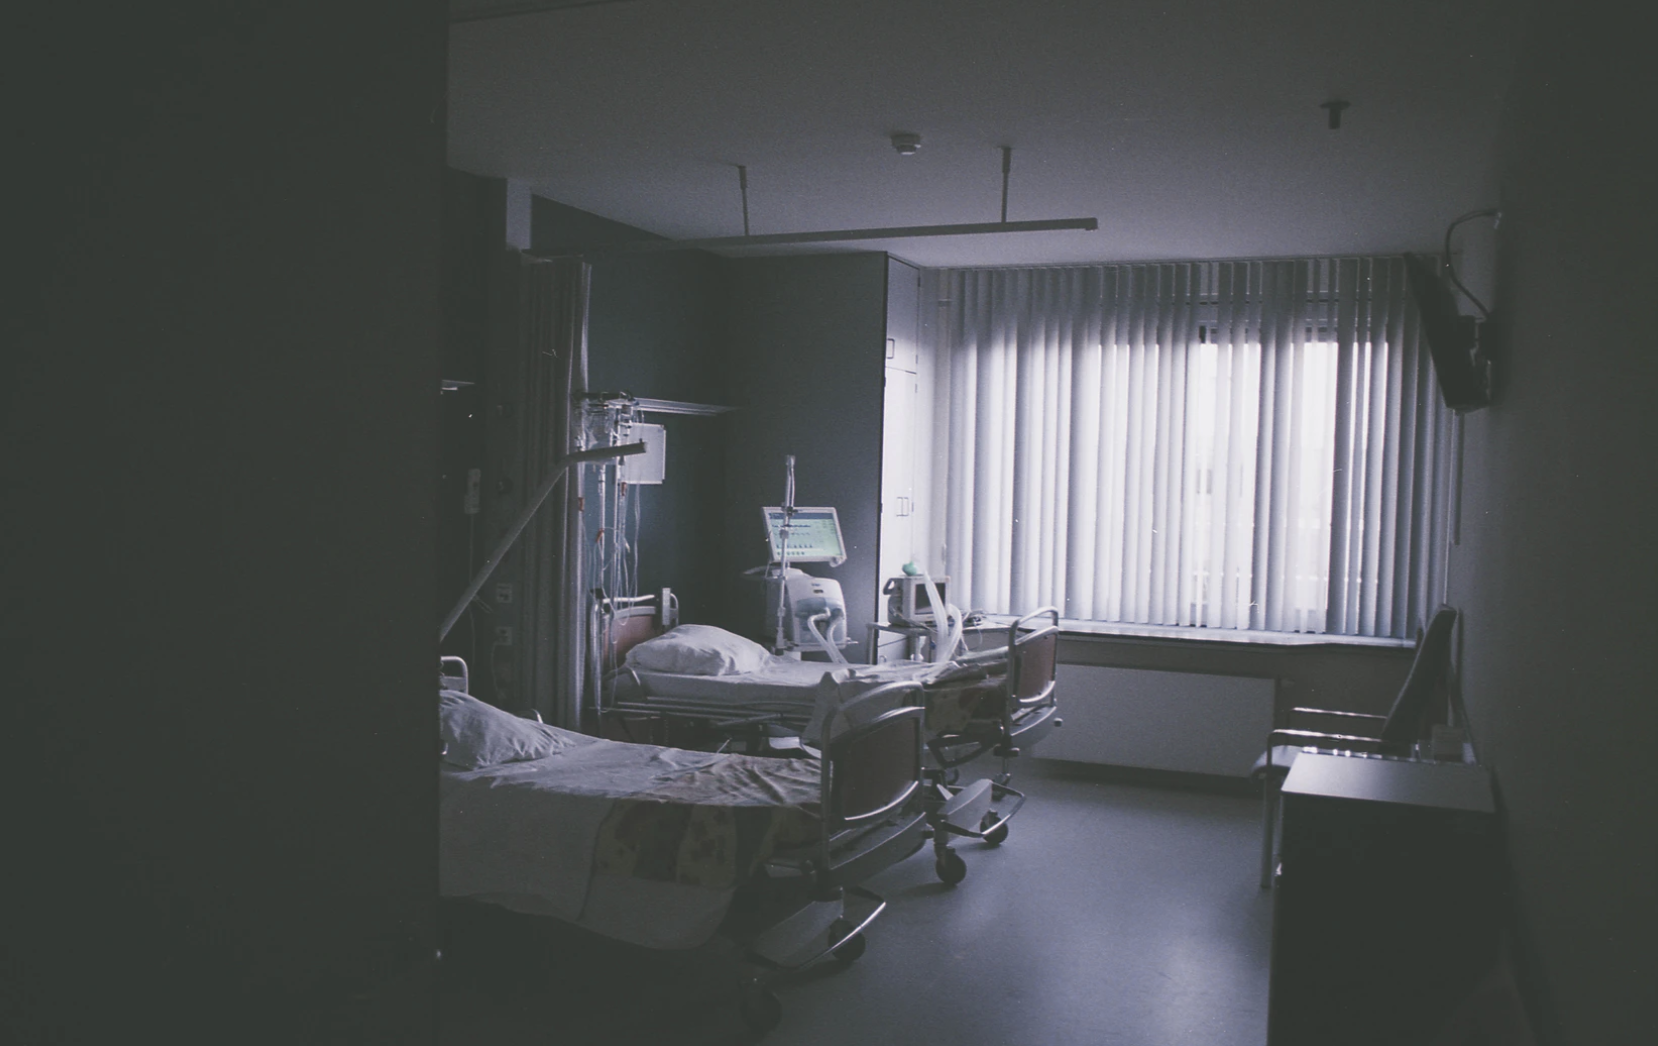 Case 82 was initially admitted as a dengue patient in a general ward at Ng Teng Fong General Hospital (NTFGH). Photo courtesy: unsplash